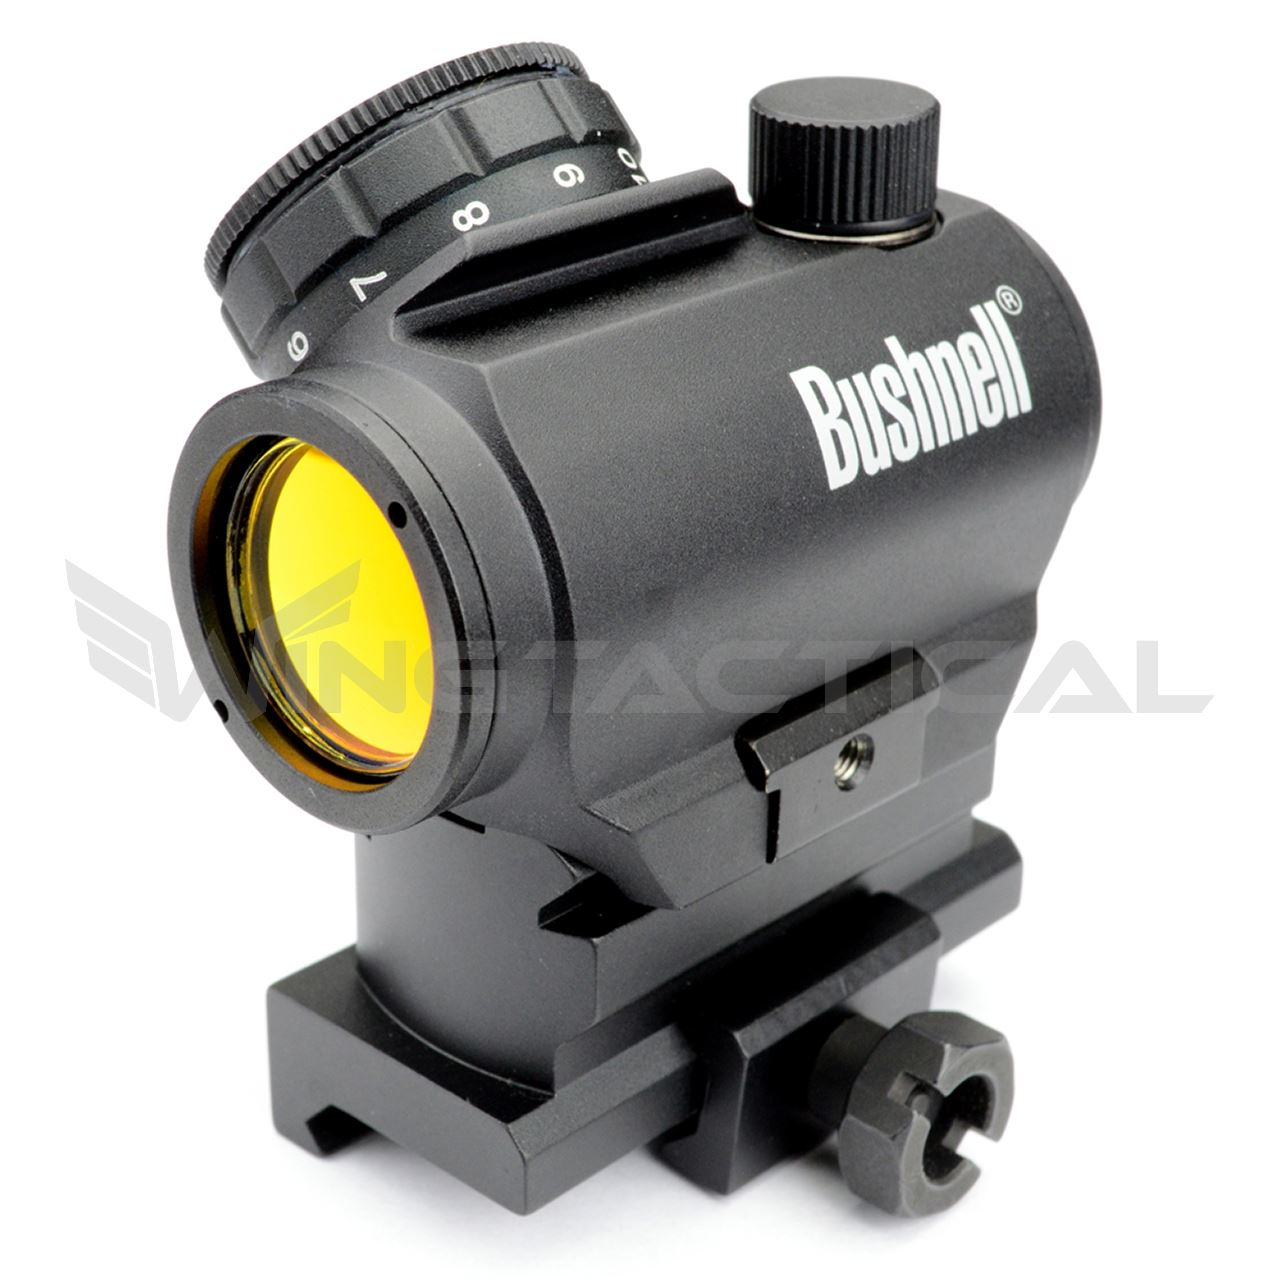 Bushnell now offers their popular TRS-25 in a